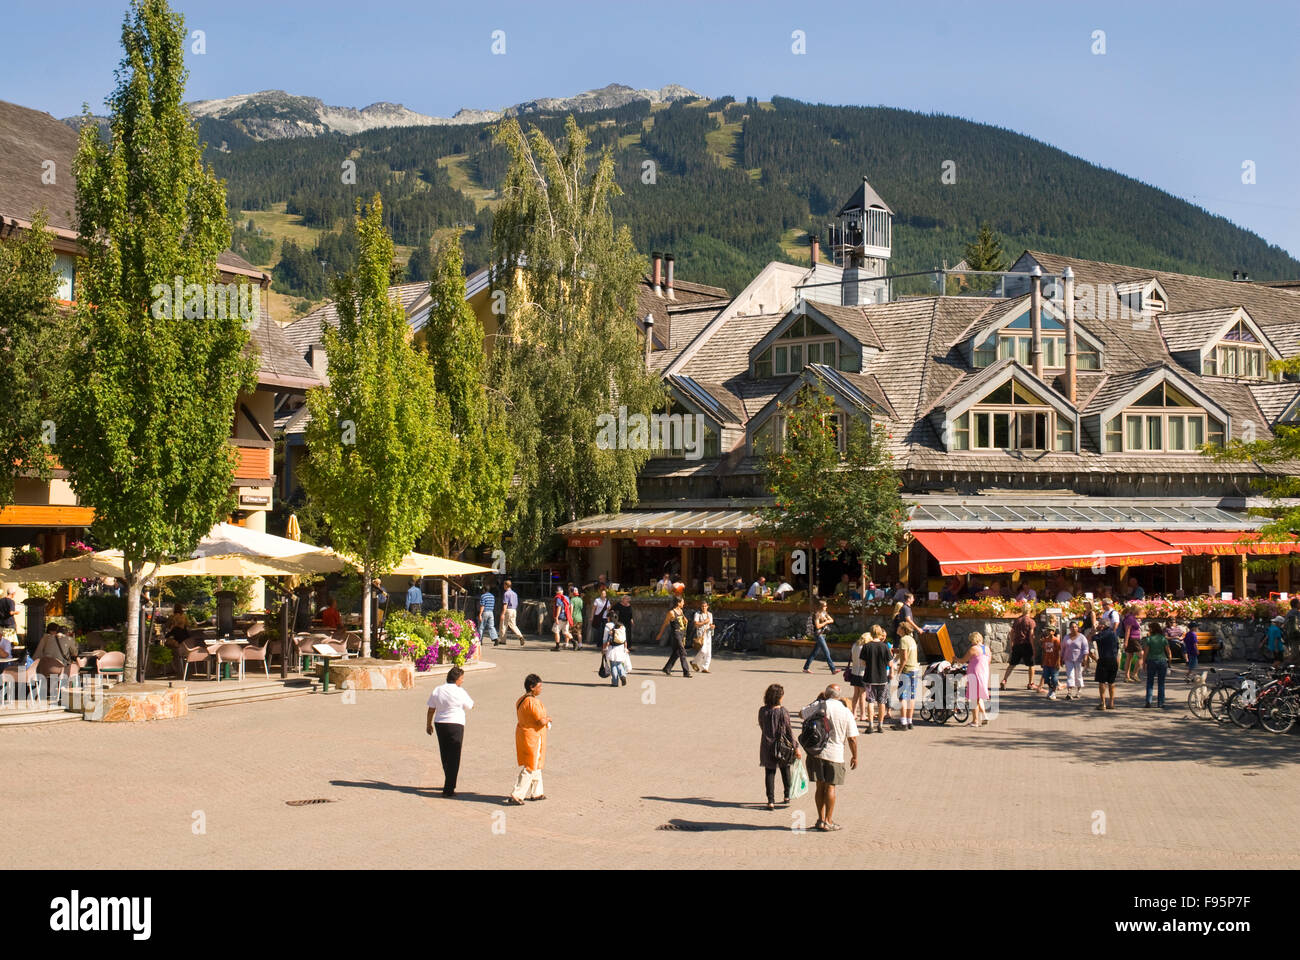 Visitors and residents wander the pedestrianonly Village Stroll in Whistler, BC during the summer - Stock Image